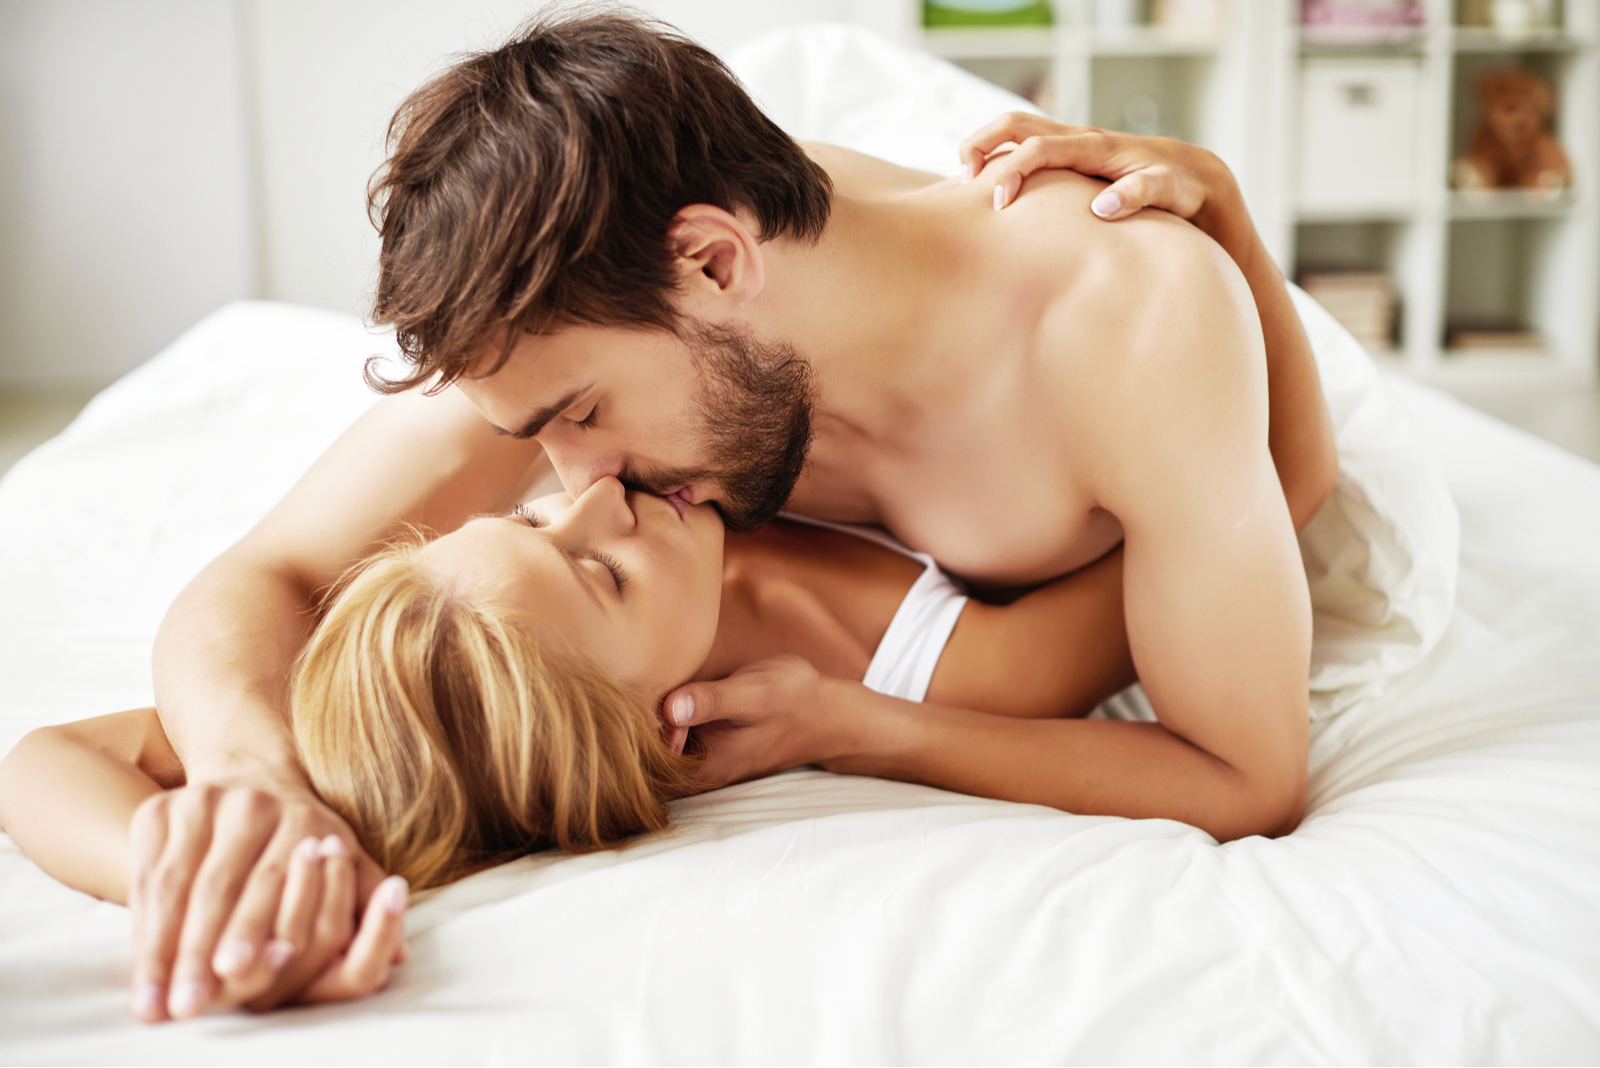 a man kisses a woman in bed